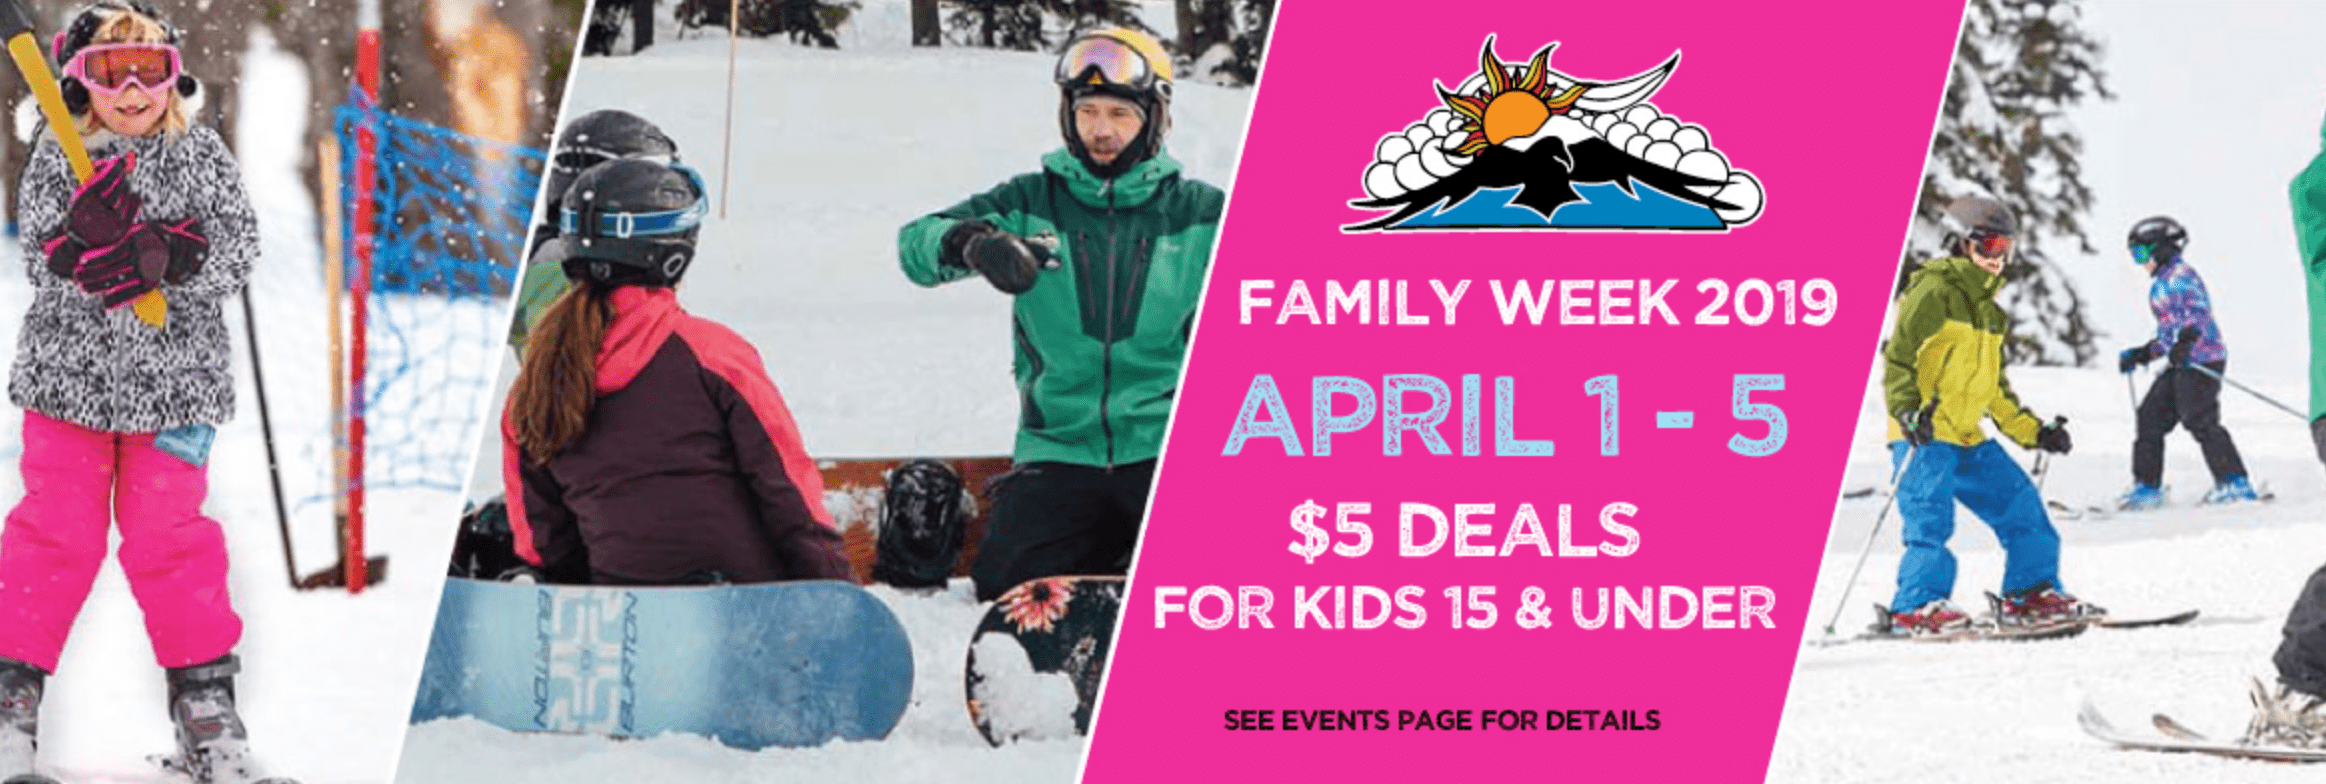 Mt Baker Ski Resort Discounts